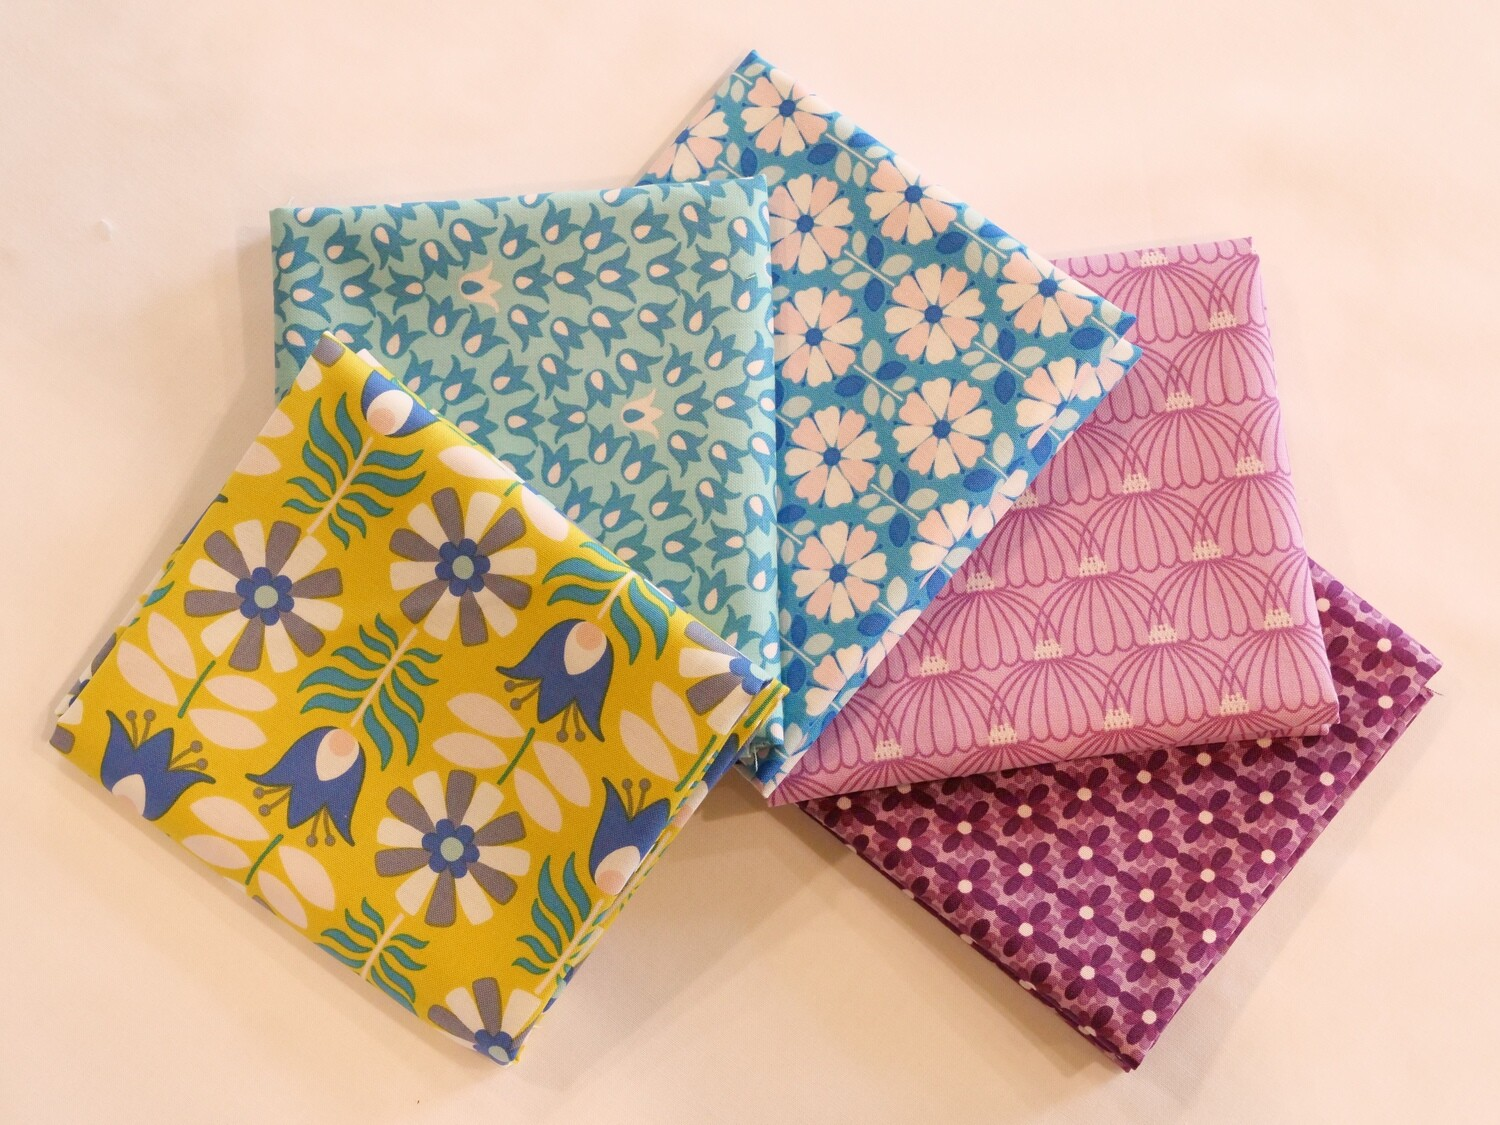 Midsommar Fat Quarter Bundle